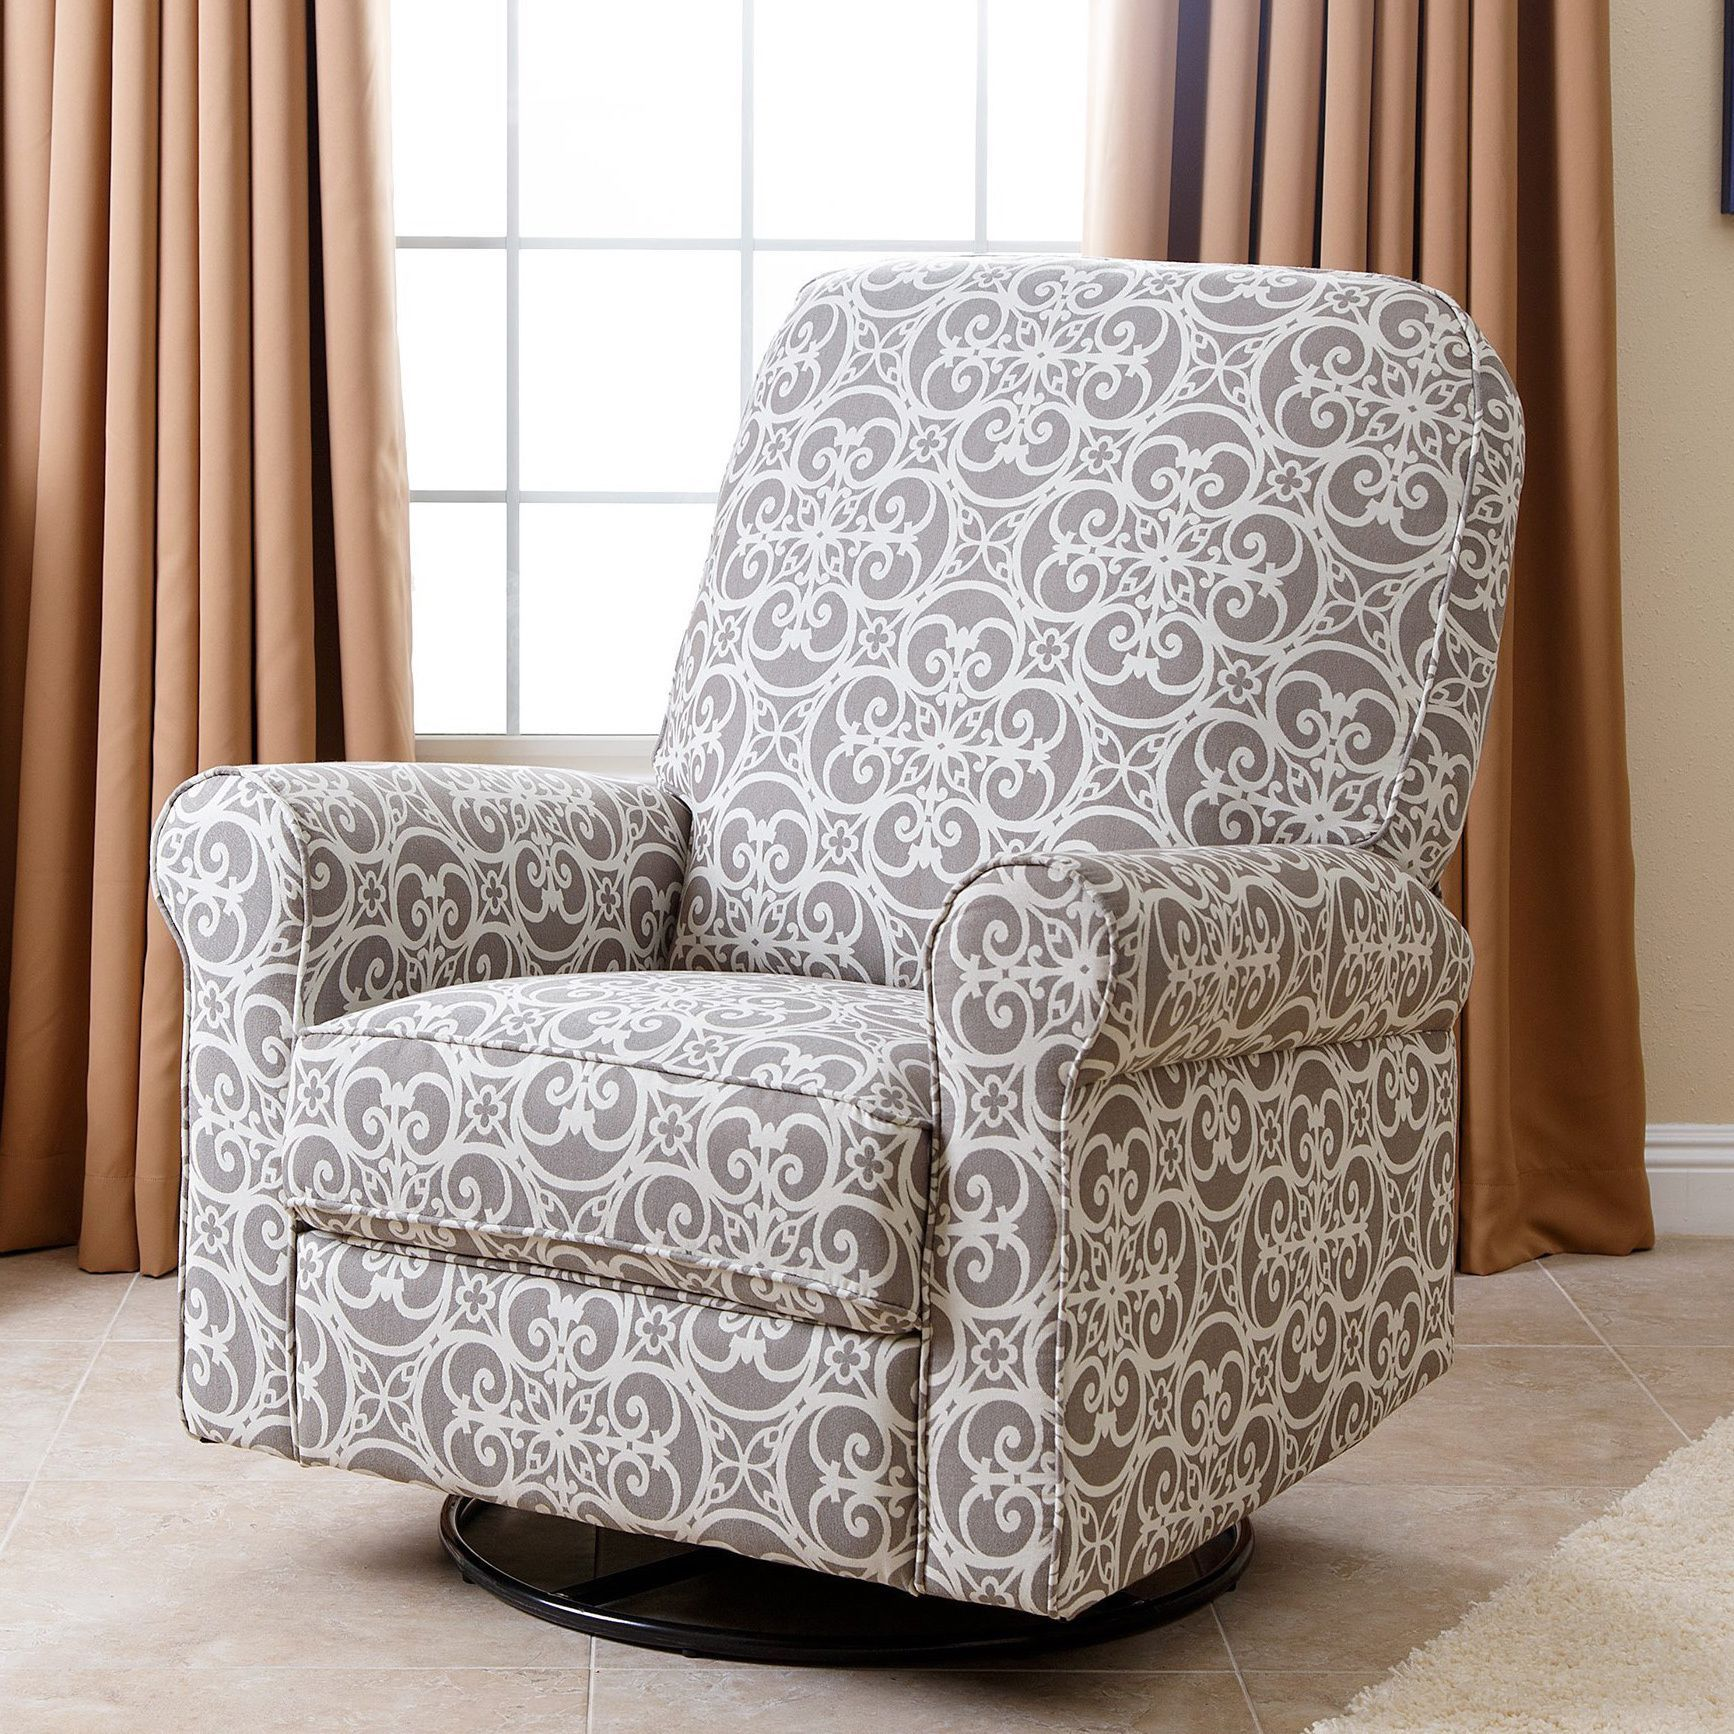 abbyson living rocking chair 111 navy this recliner offers outstanding comfort and styling